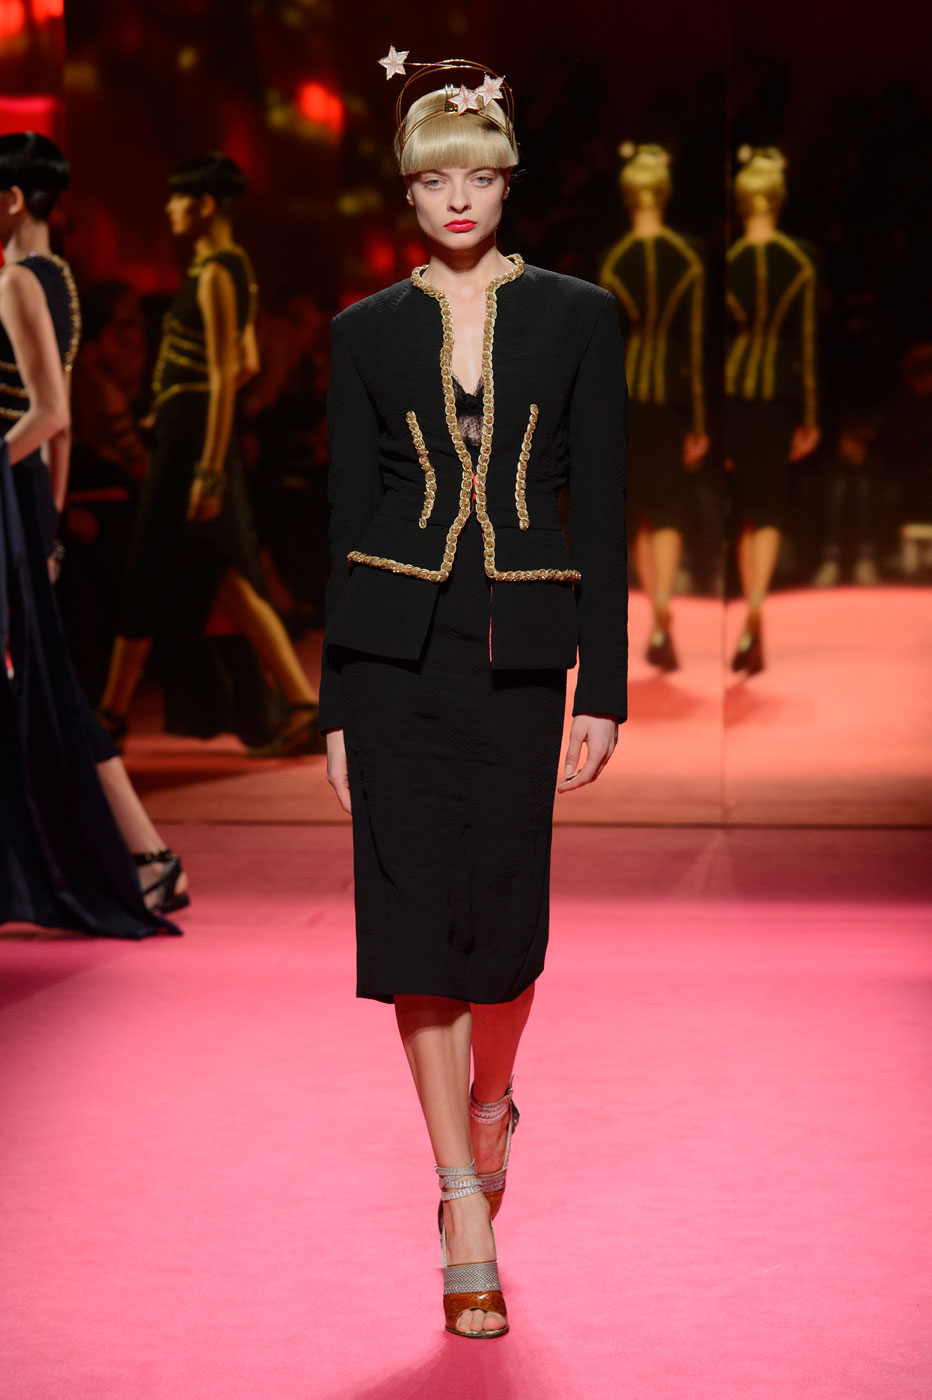 Schiaparelli-fashion-runway-show-haute-couture-paris-spring-summer-2015-the-impression-19